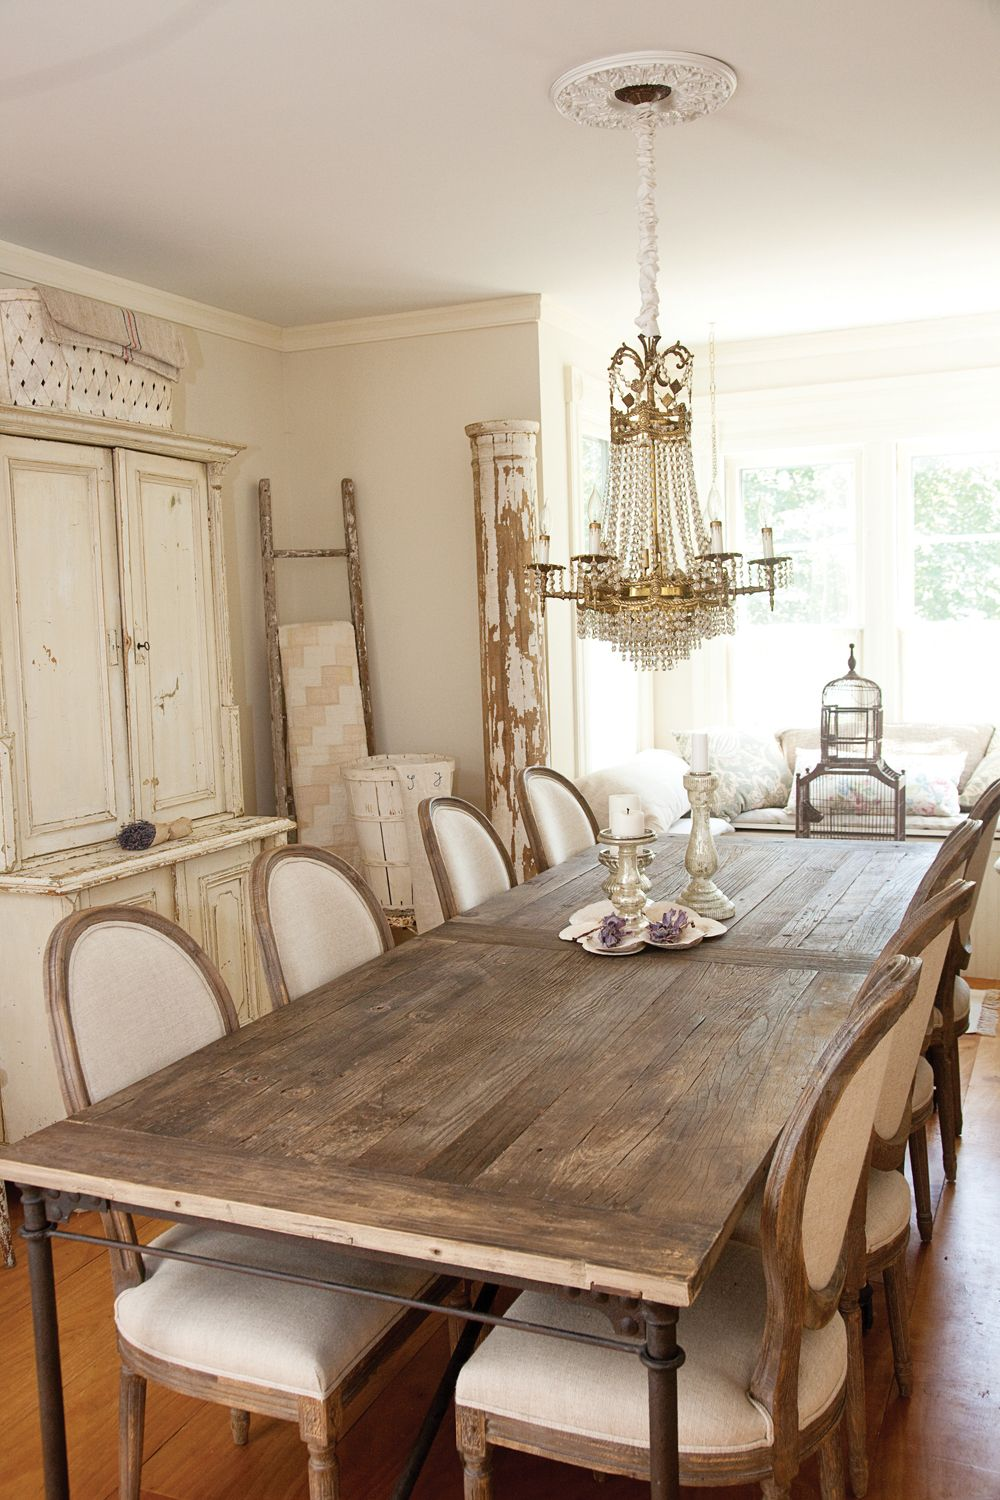 Favorite Things Friday | Dining Room | Country dining ...